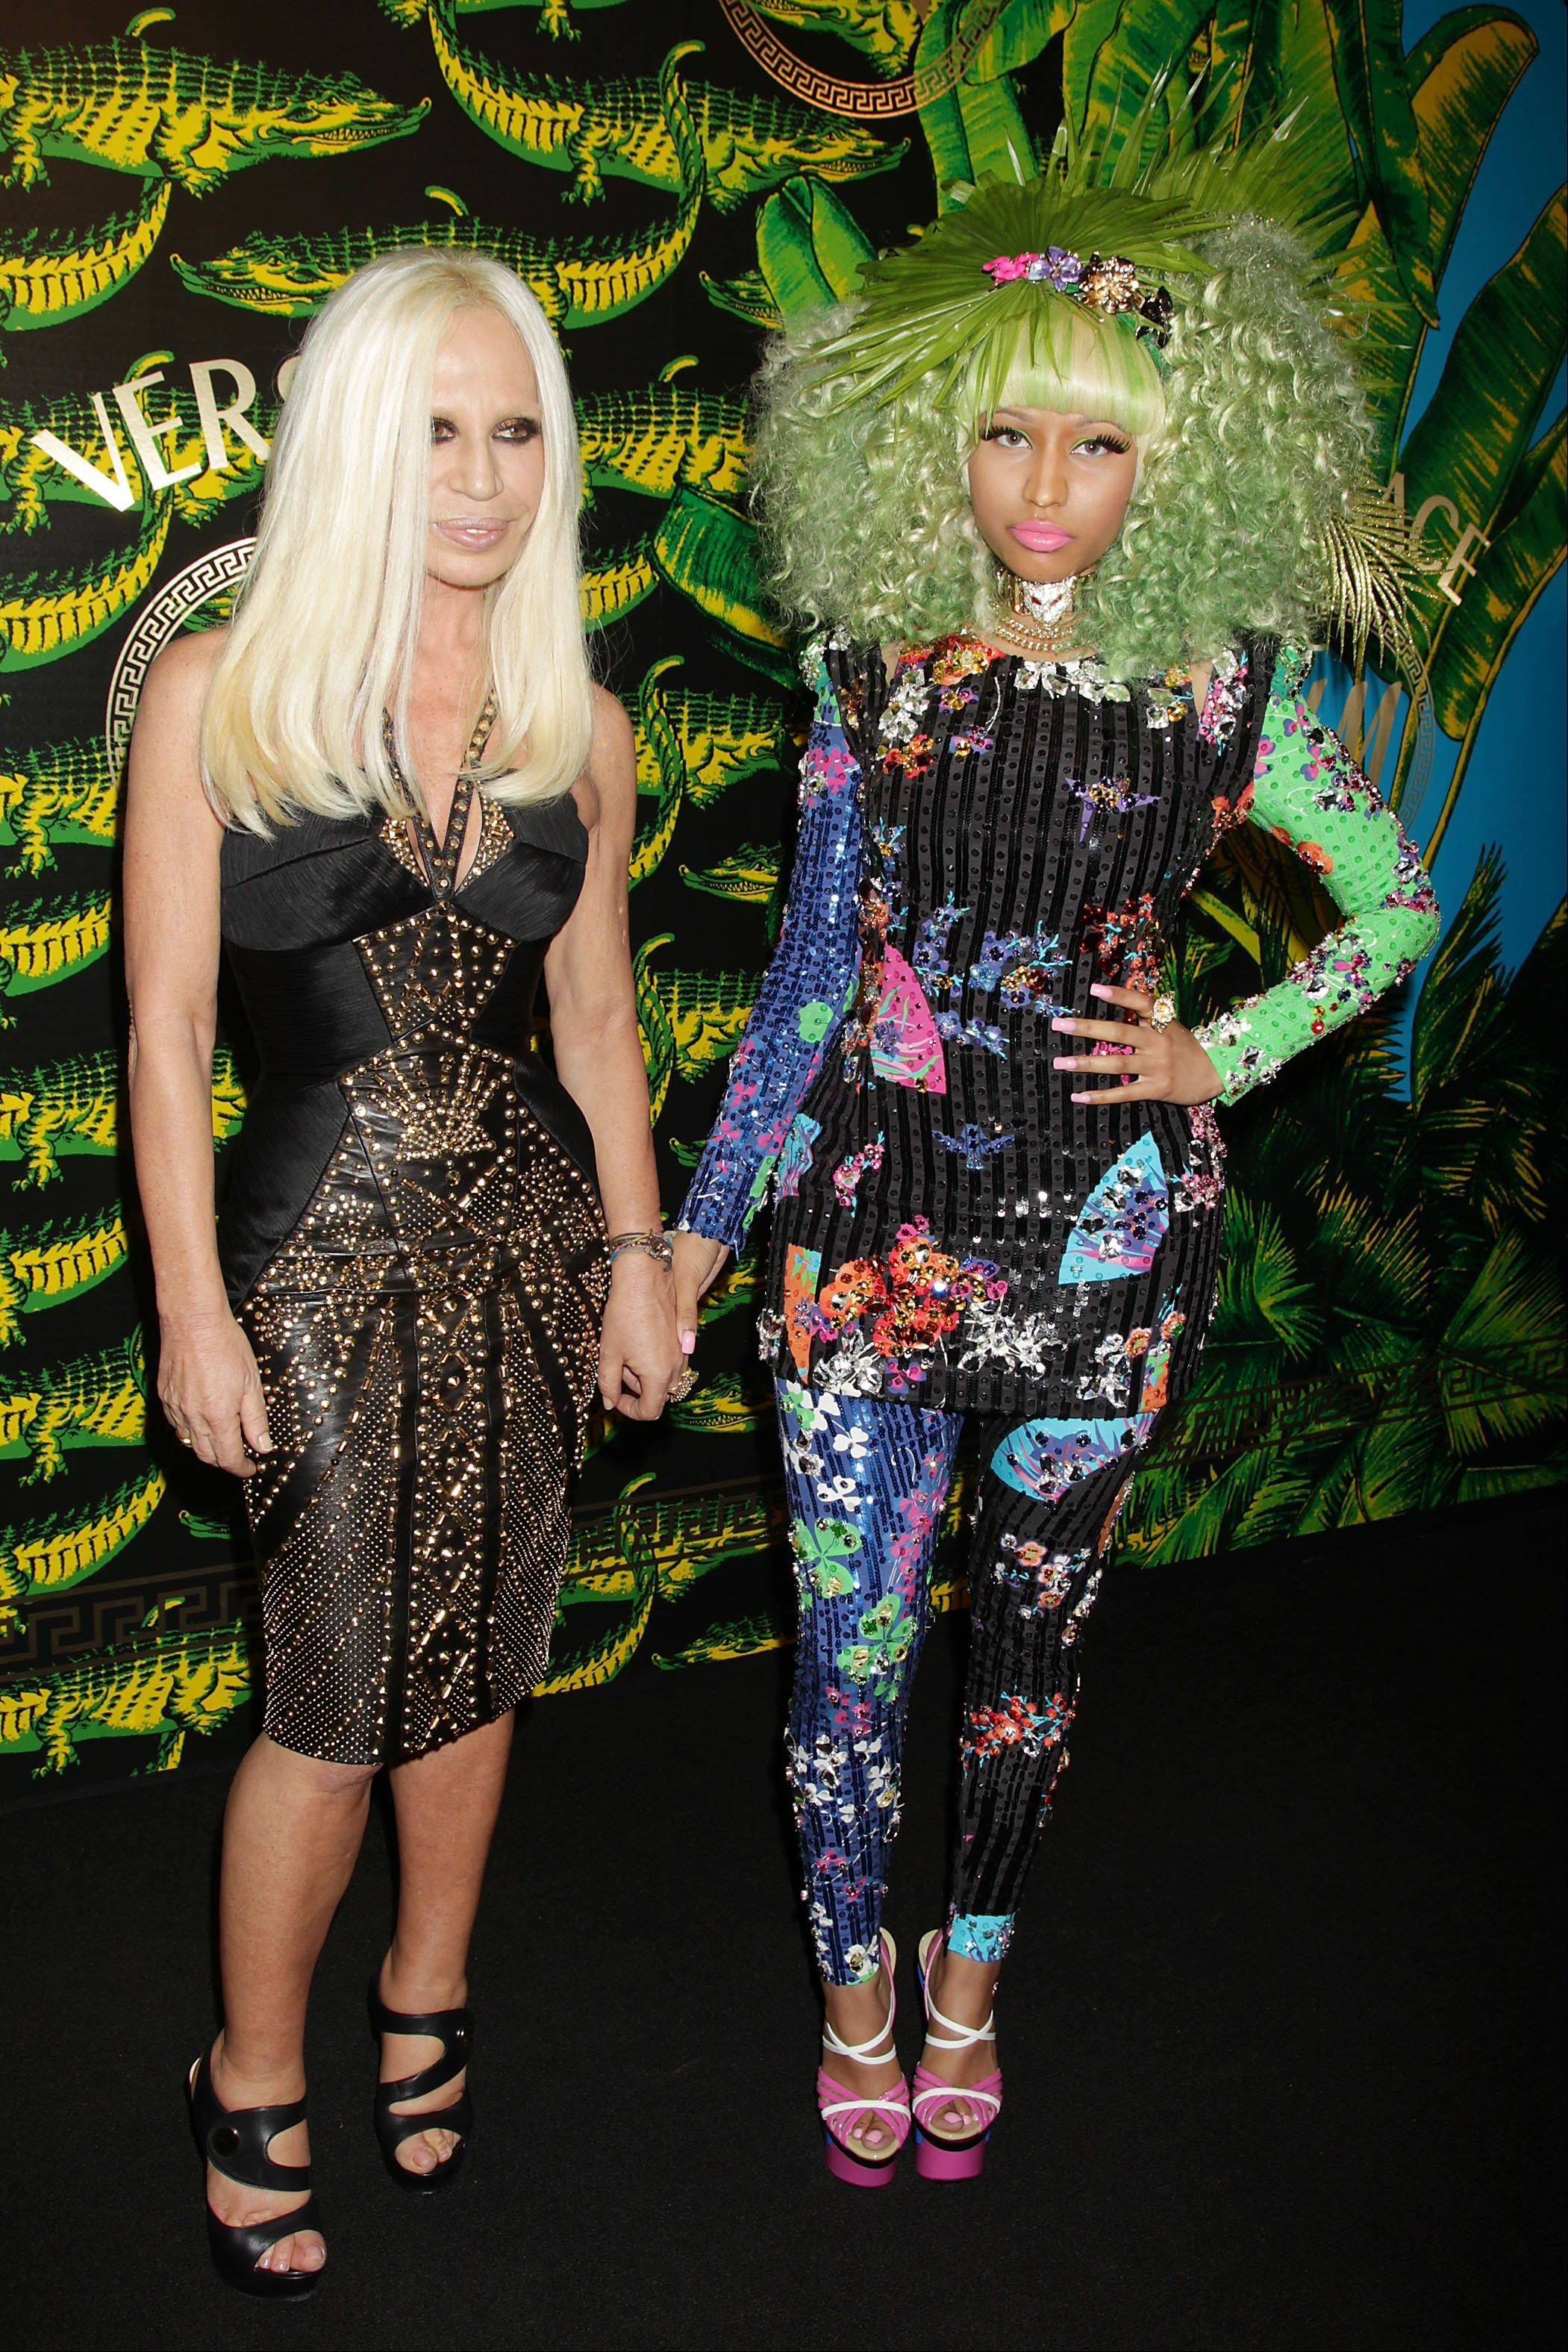 Designer Donatella Versace, left, and singer Nicki Minaj pose at the Versace for H&M Fashion Show and Party at Pier 57.